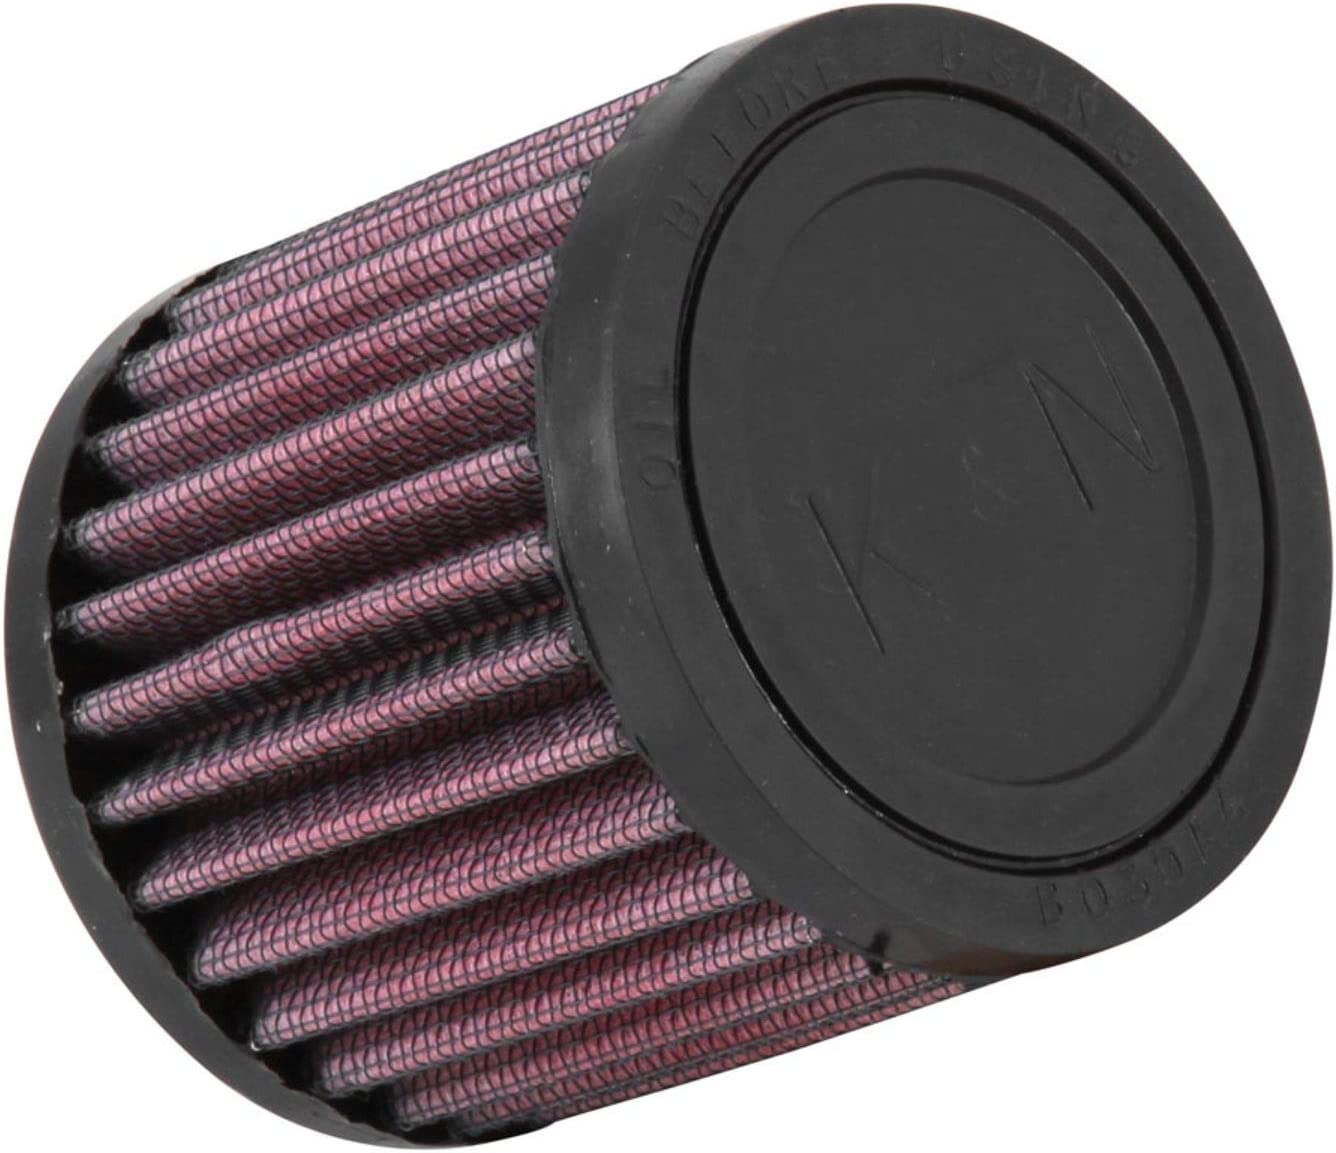 76 mm Top 32 mm Flange ID; 3 in K/&N RU-0060 Universal Clamp-On Air Filter: Round Straight; 1.25 in 76 mm Height; 3 in Base; 3 in 76 mm